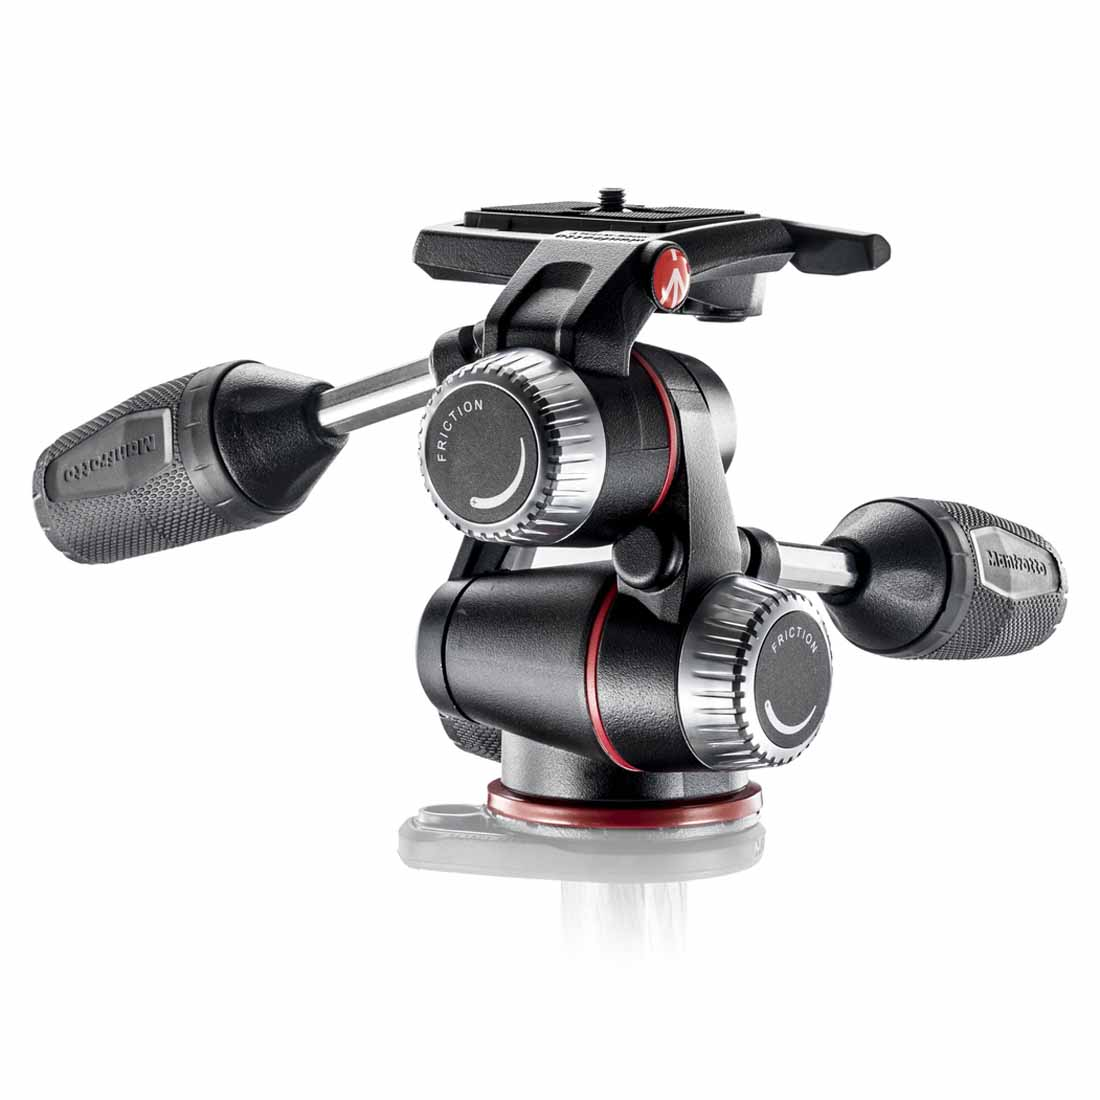 3-way glava Manfrotto MHXPRO-3W